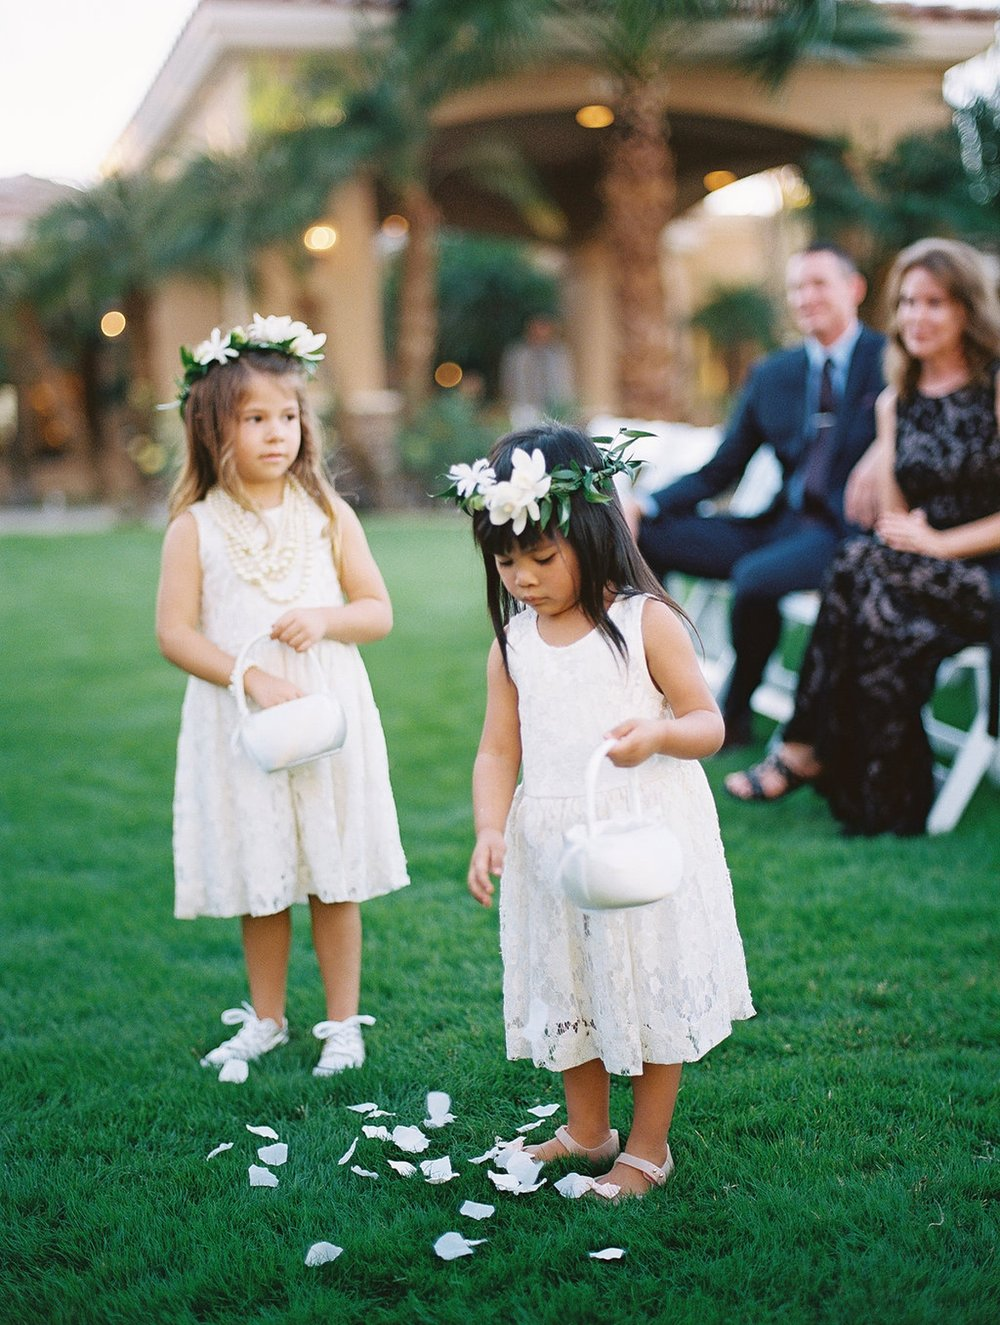 Phi and Alannas Backyard Wedding in Palm Springs California 19.jpg